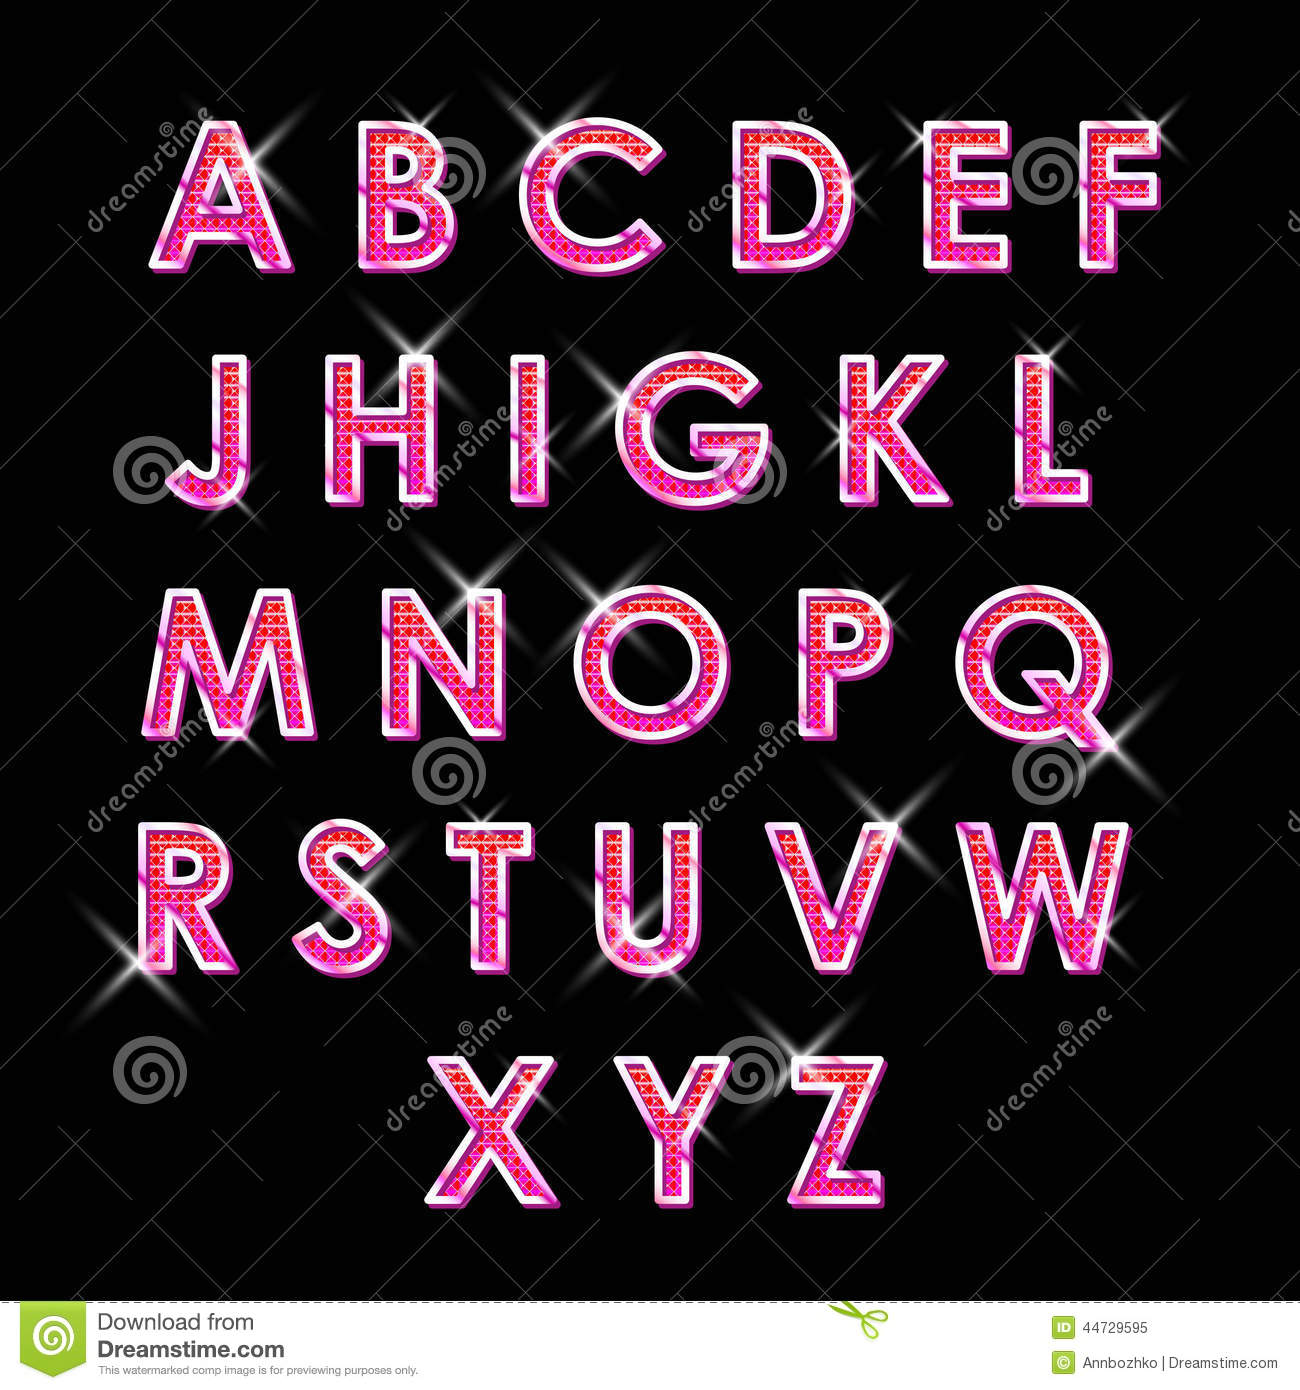 ABS neon letters